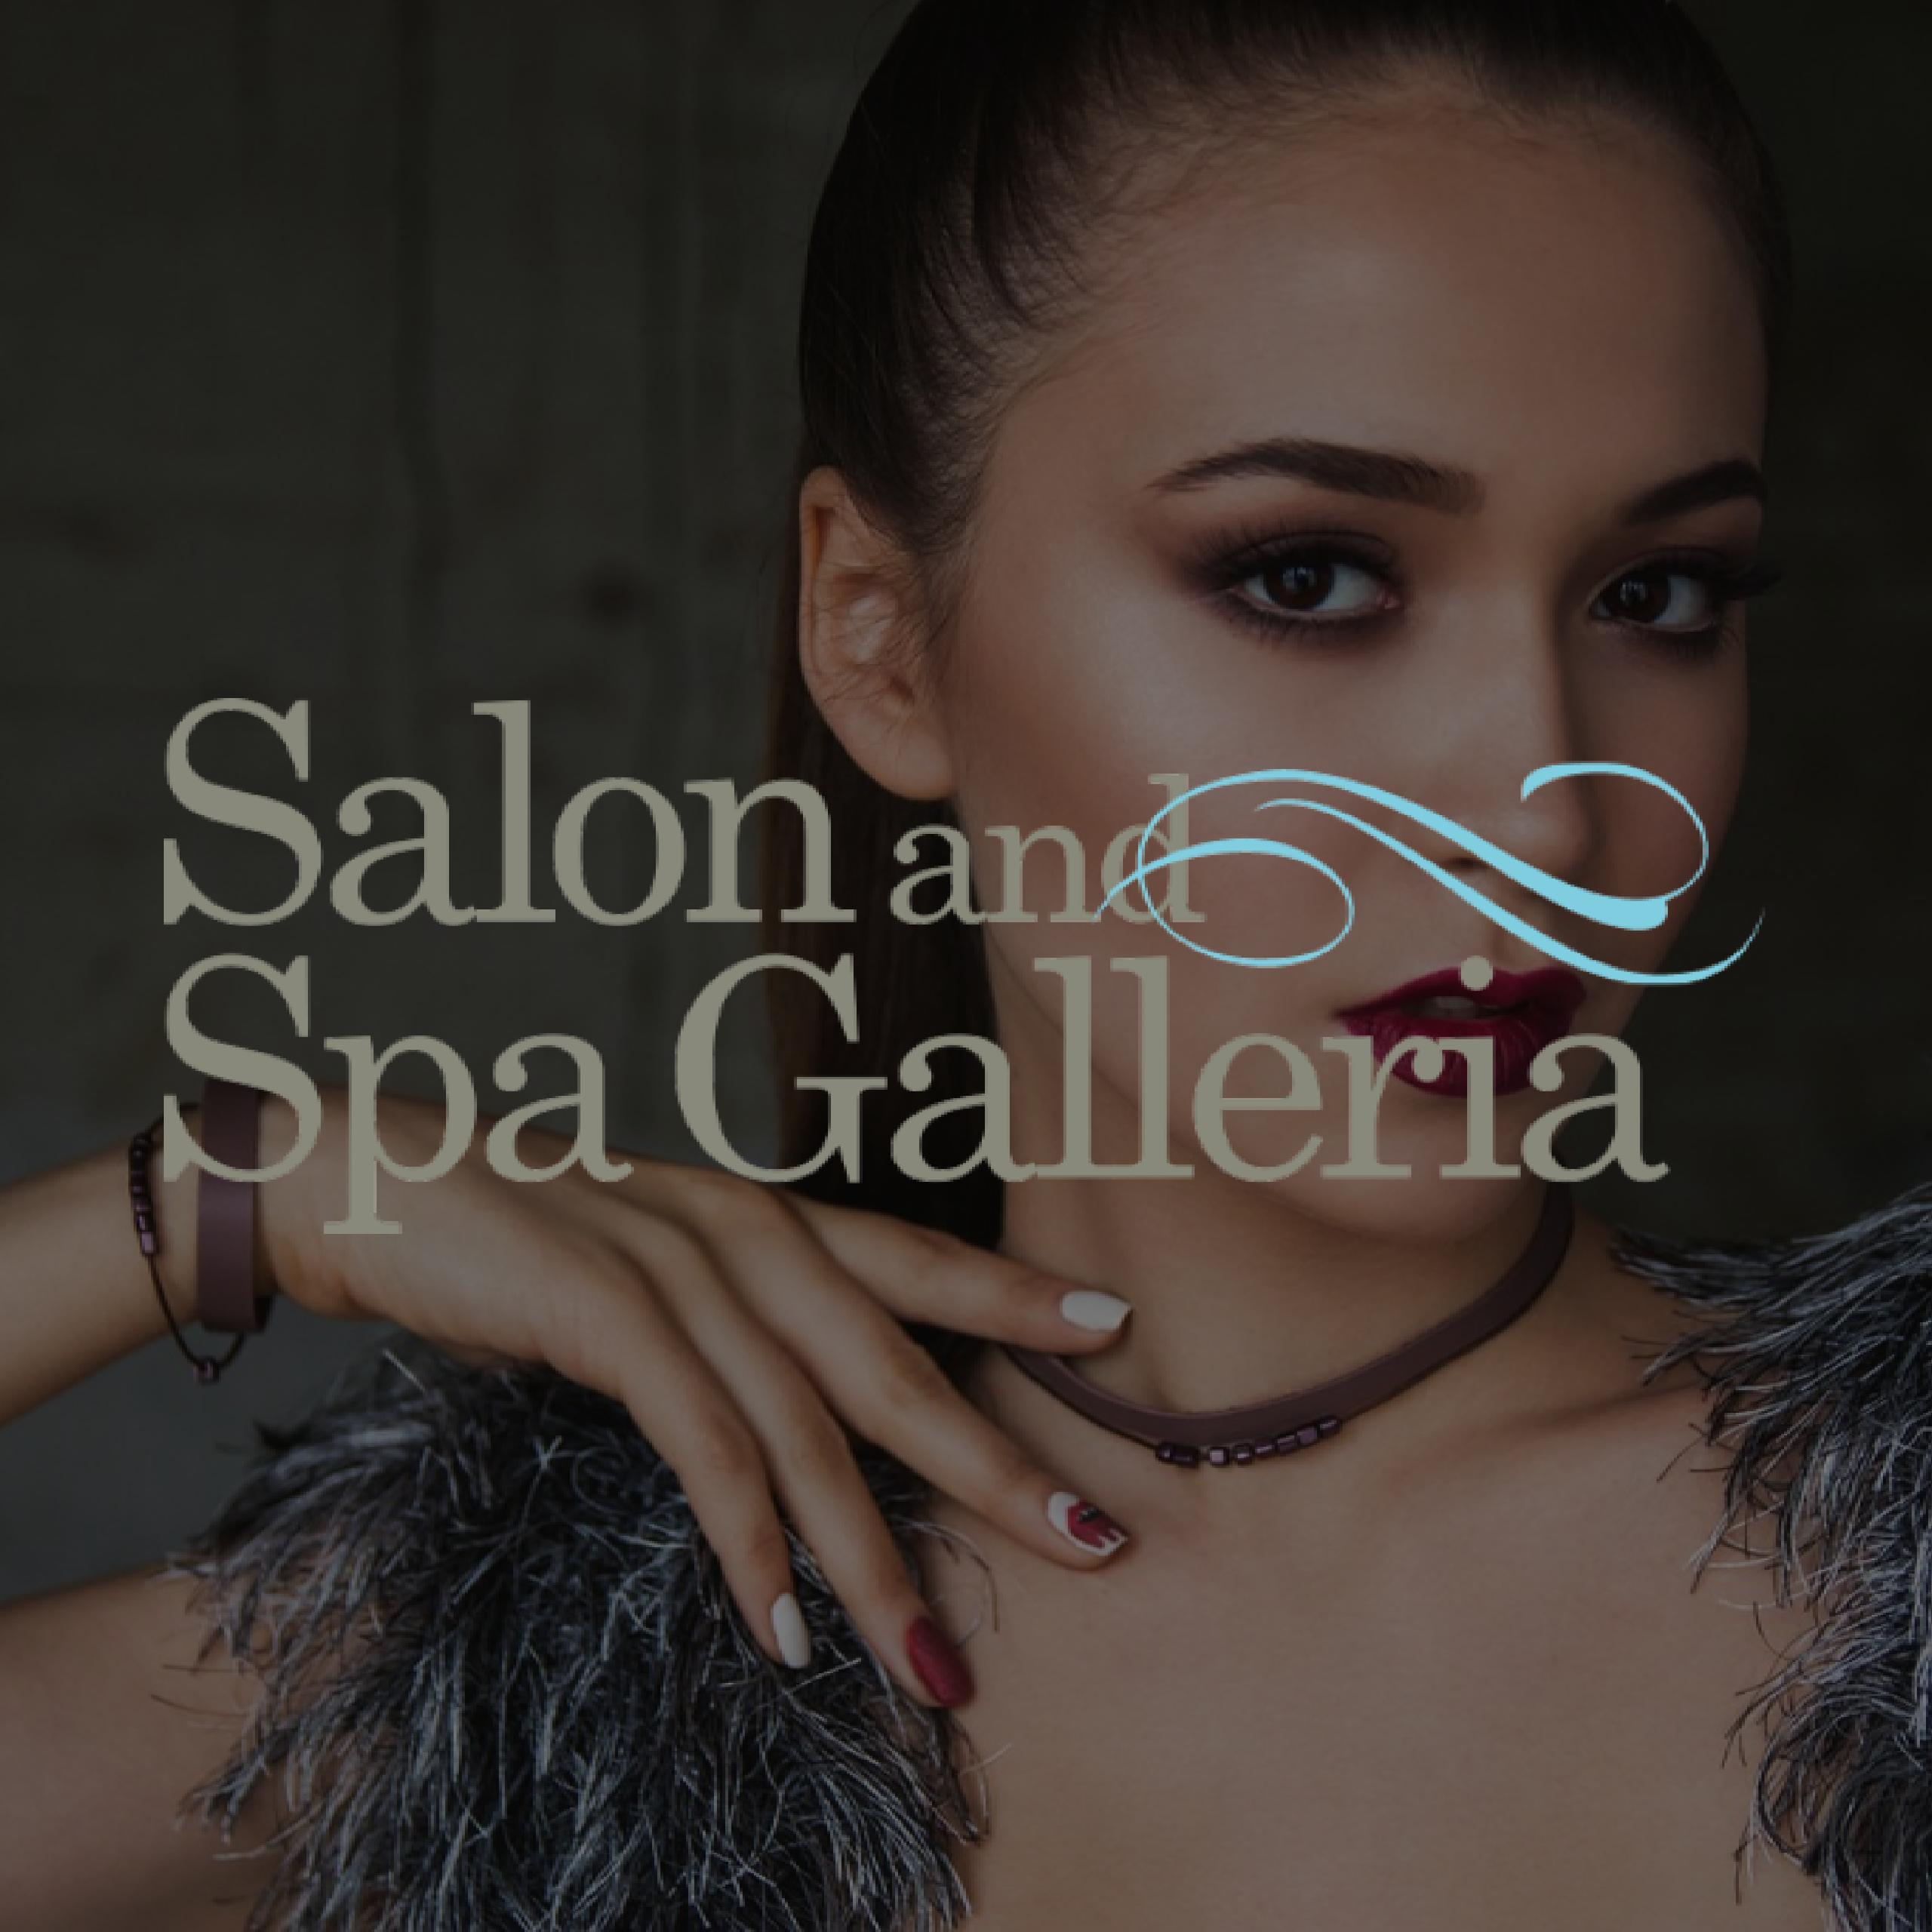 Nail Salon Suite available at Salon & Spa Galleria